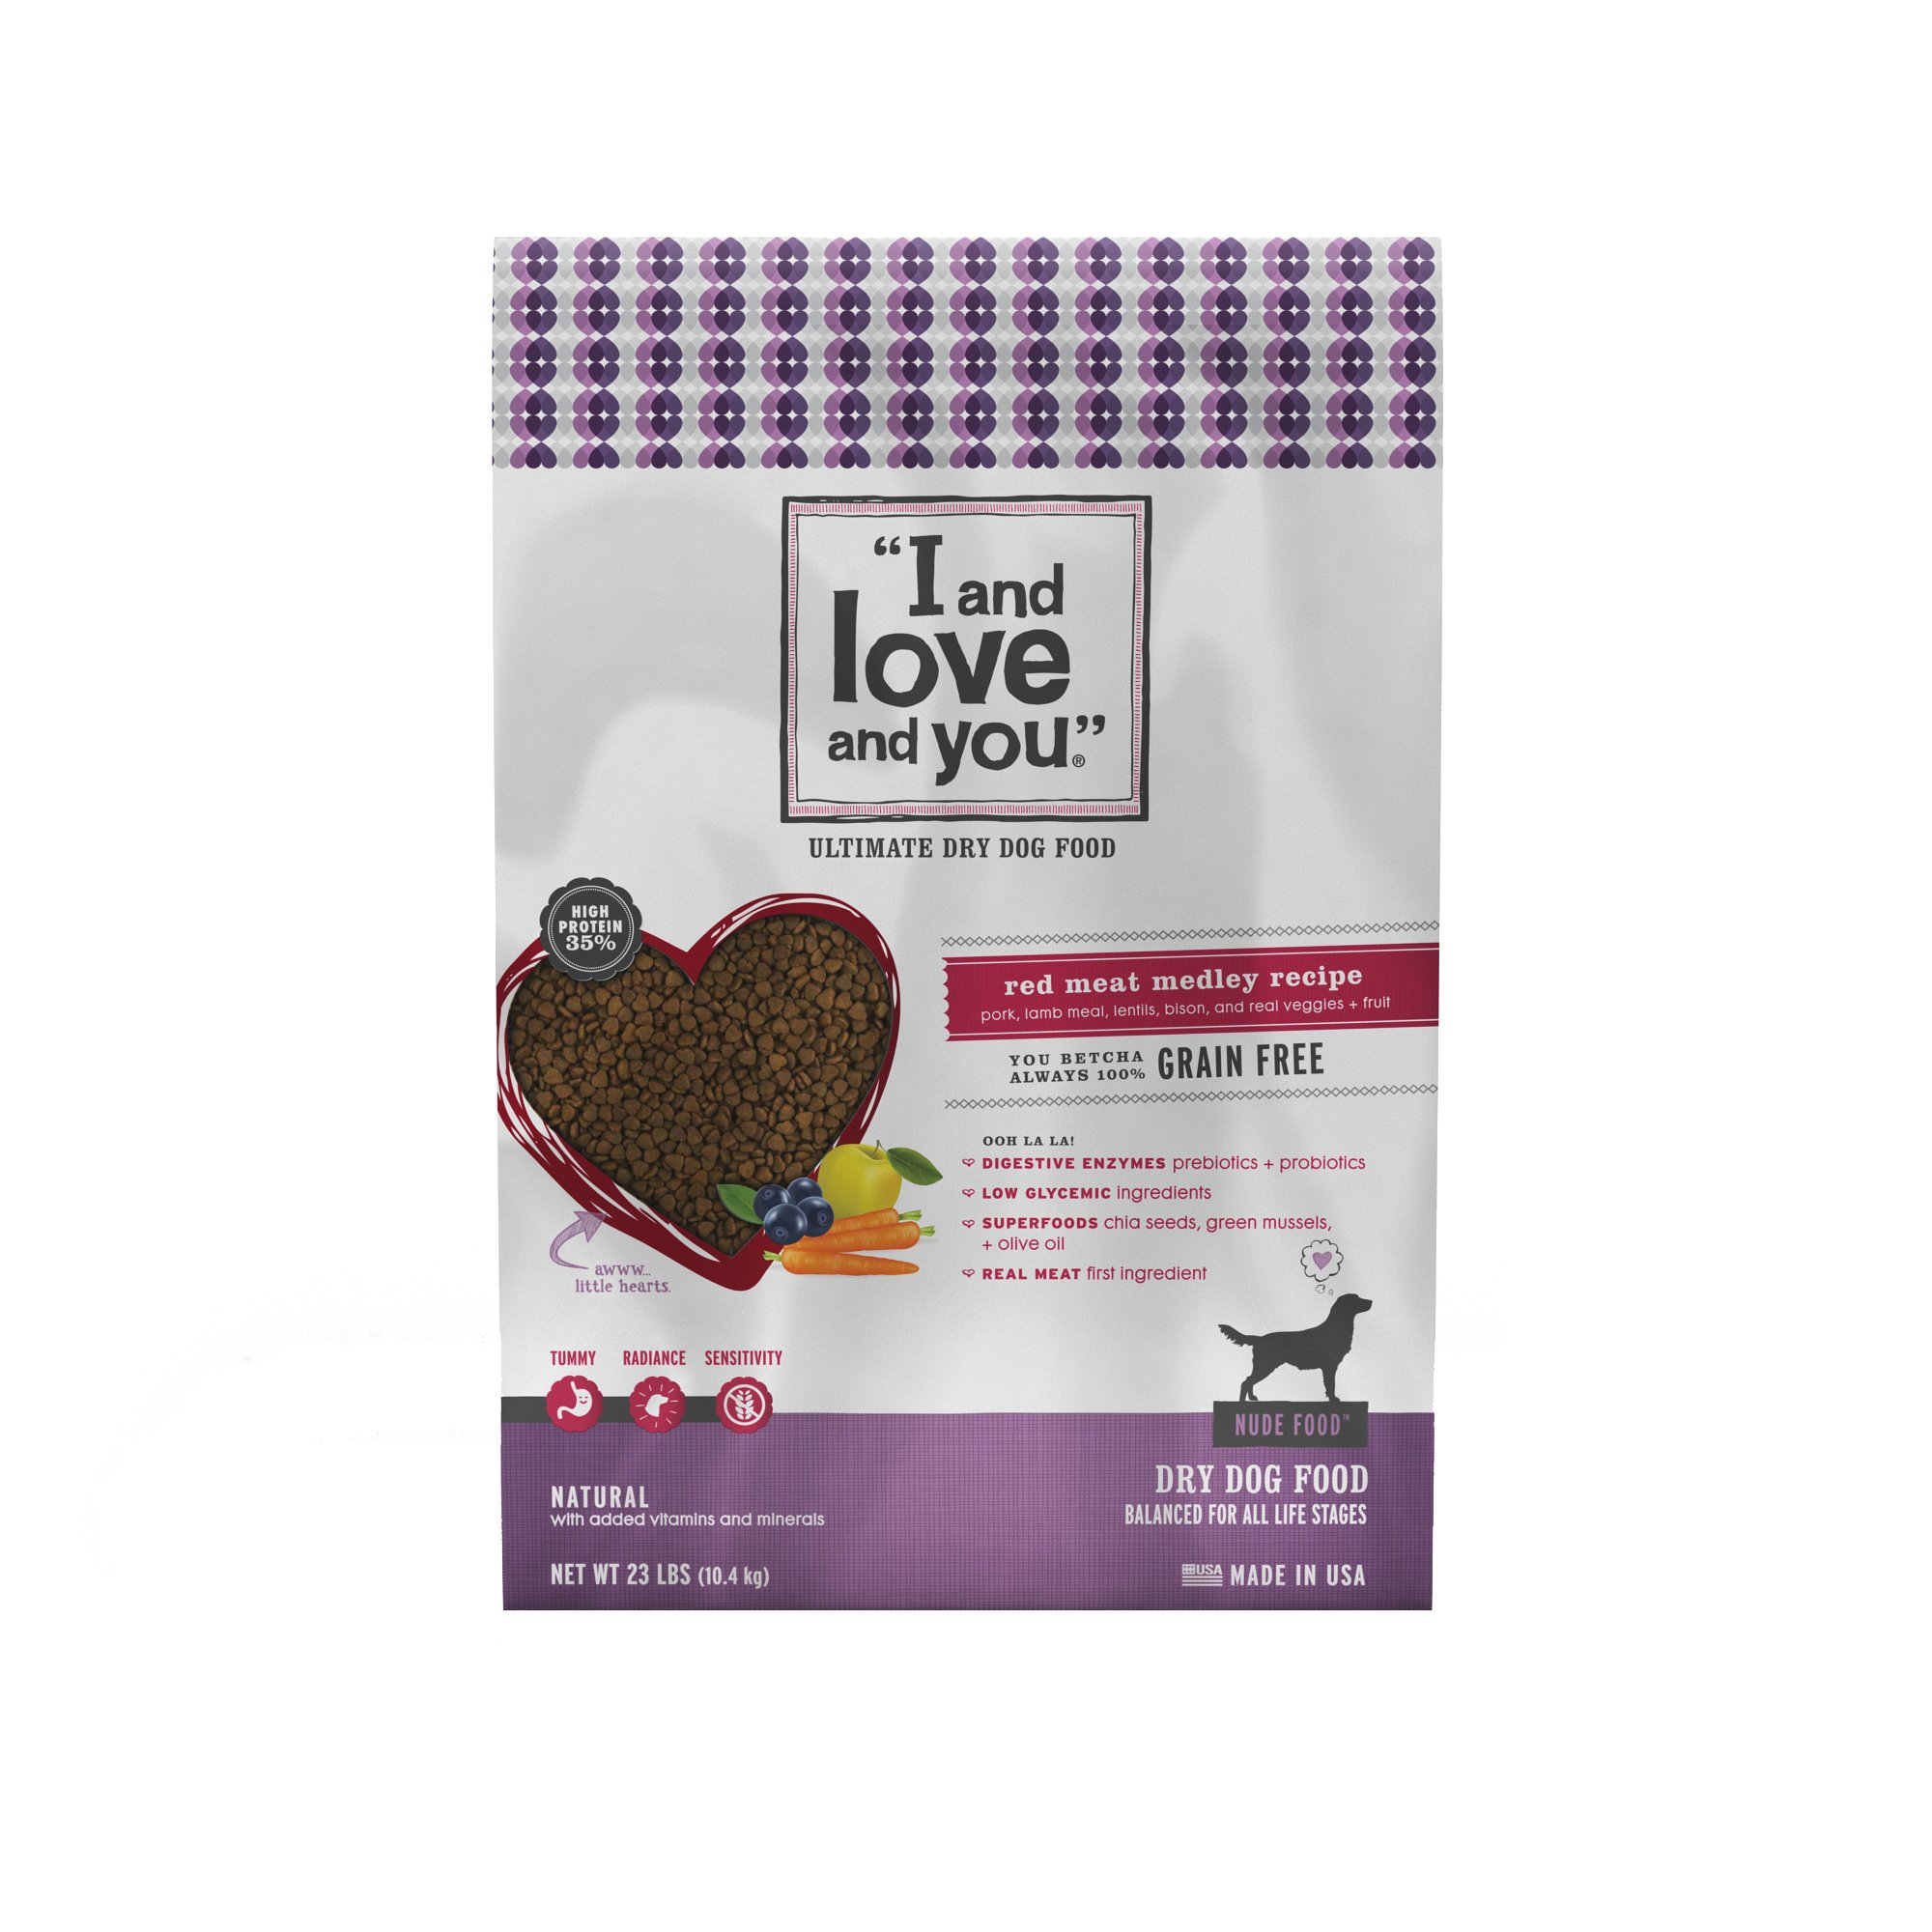 I and Love and You Nude Food, Natural Grain Free Dog Food